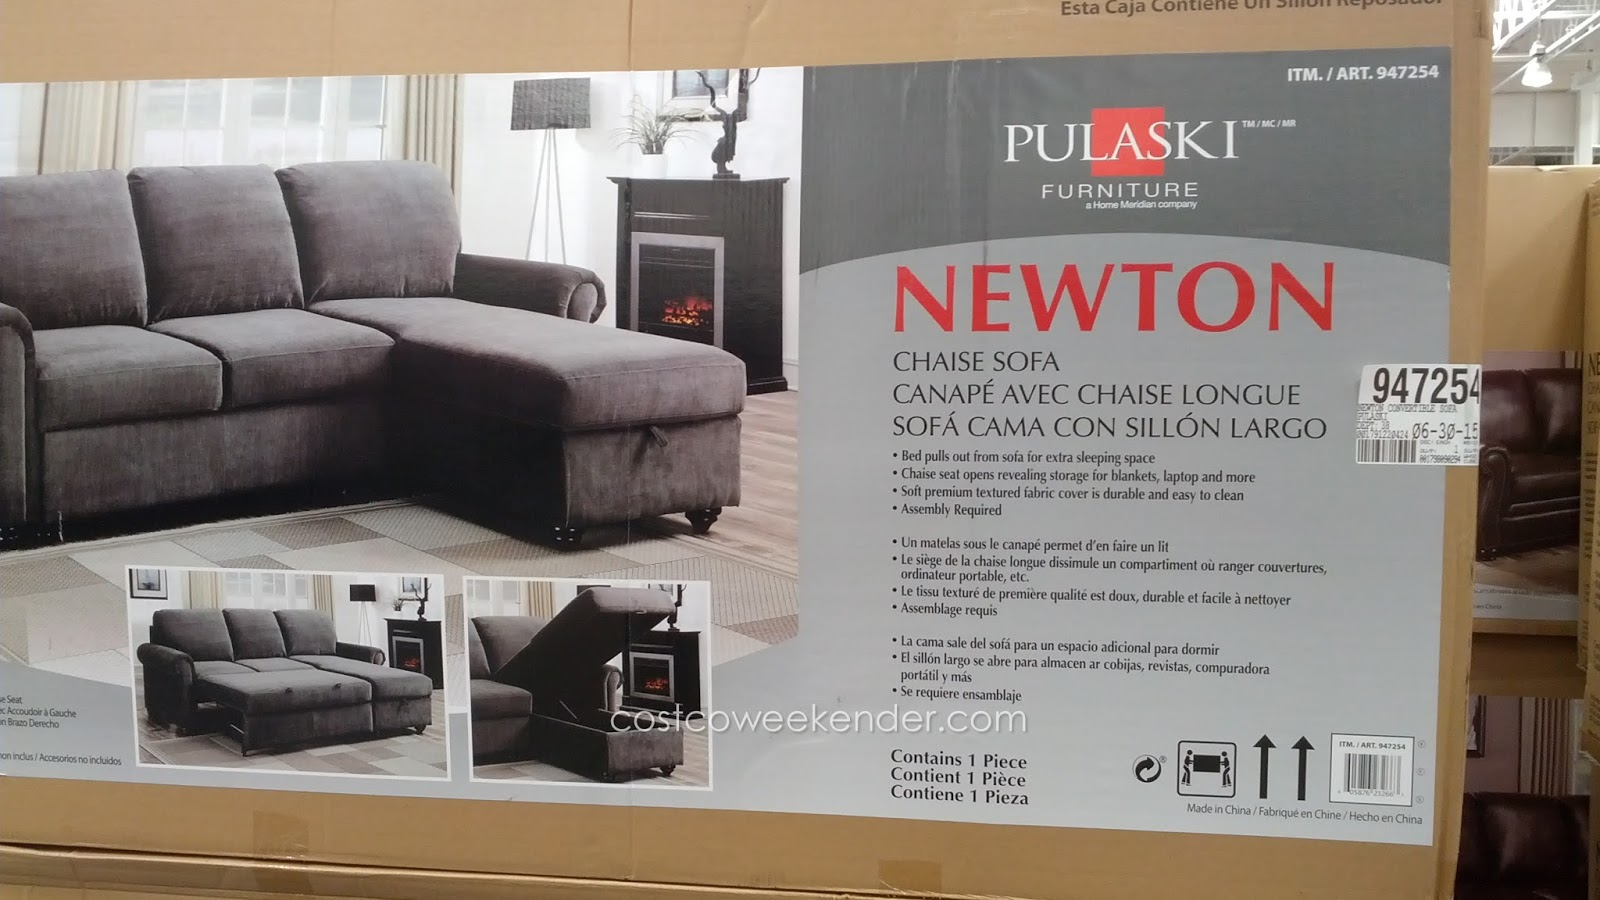 Relax In Your Home With The Pulaski Newton Convertible Chaise Sofa